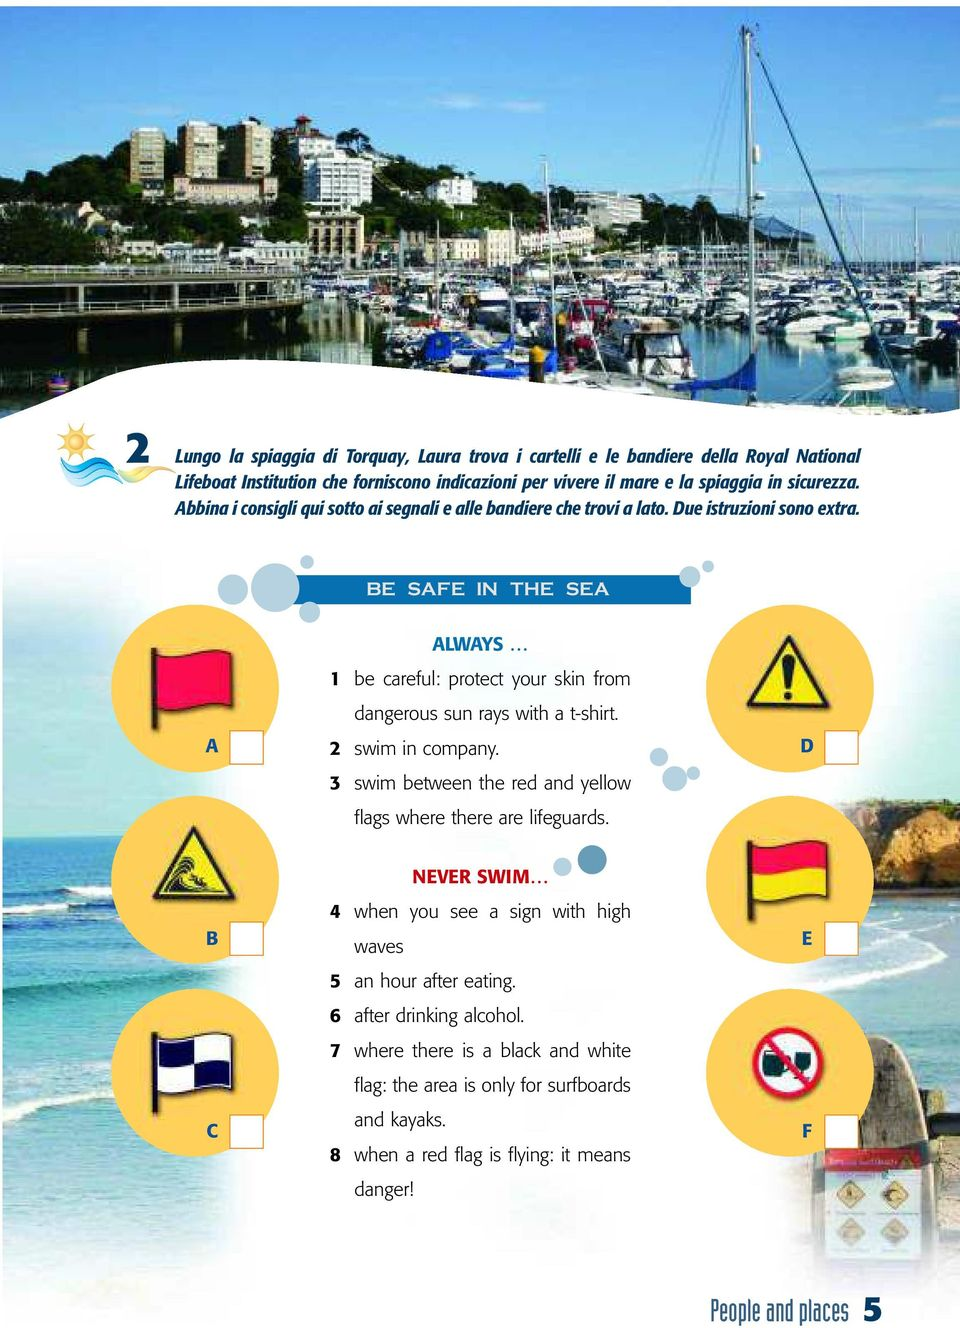 BE SAFE IN THE SEA A ALWAYS 1 be careful: protect your skin from dangerous sun rays with a t-shirt. 2 swim in company.